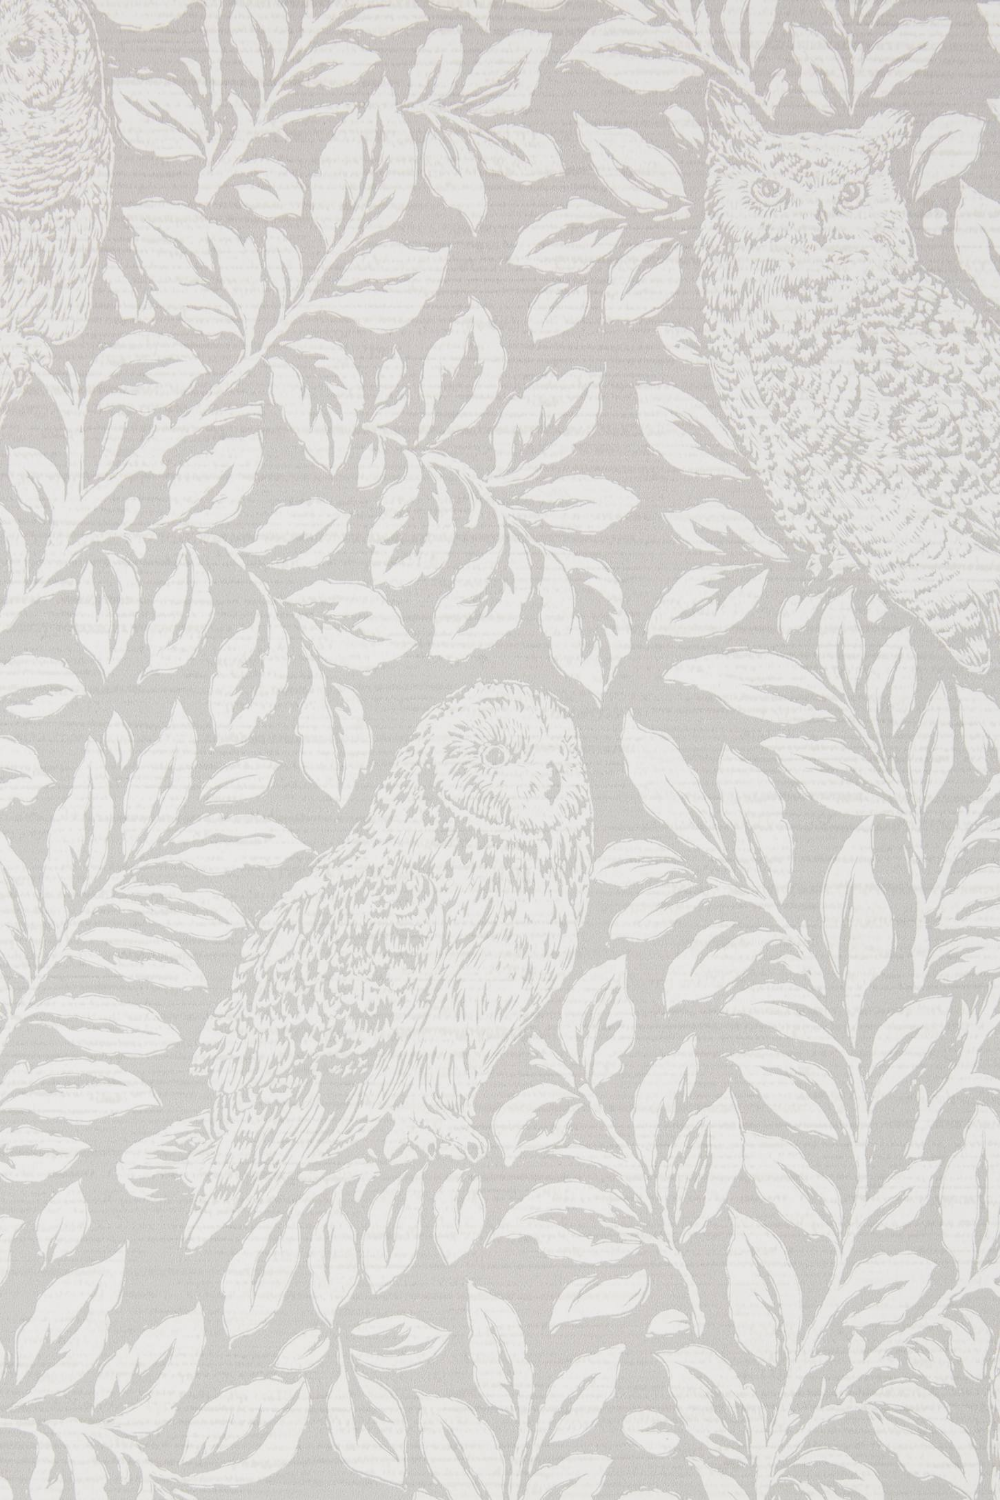 Parliament Owl Wallpaper by Anthropologie in Grey, Wall